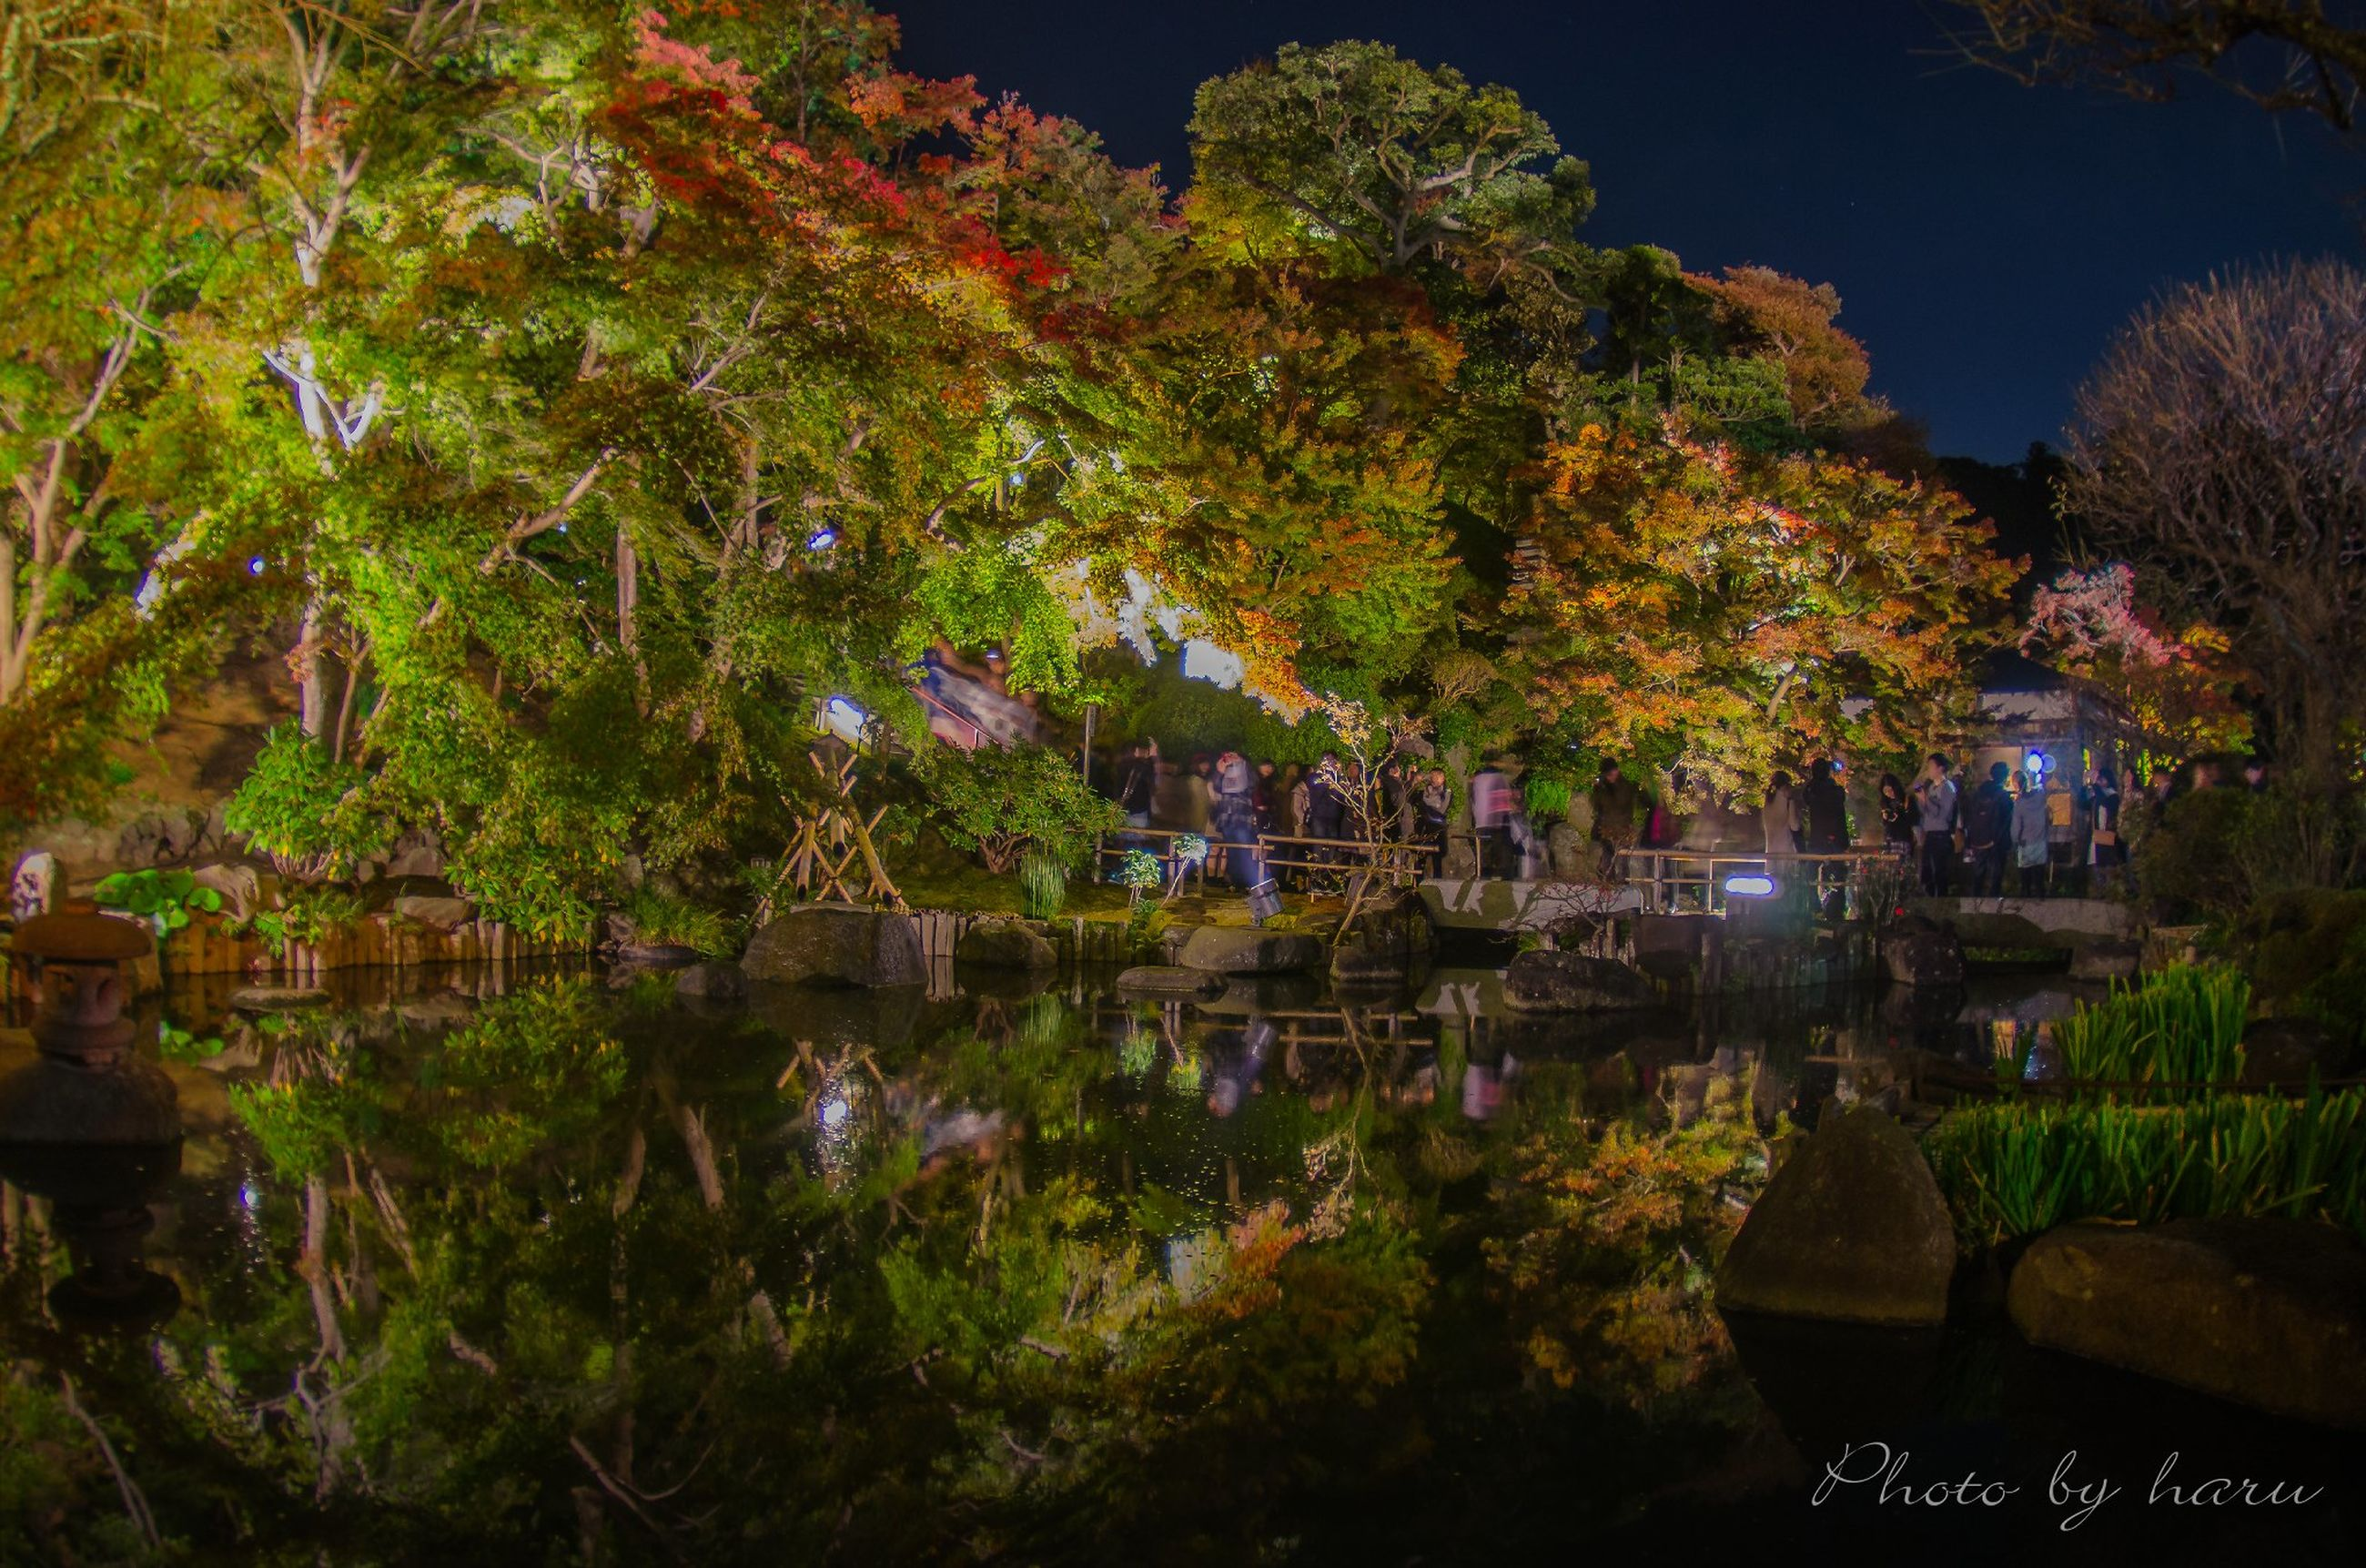 tree, water, growth, reflection, tranquility, nature, lake, beauty in nature, tranquil scene, pond, scenics, built structure, park - man made space, outdoors, clear sky, building exterior, plant, illuminated, night, architecture